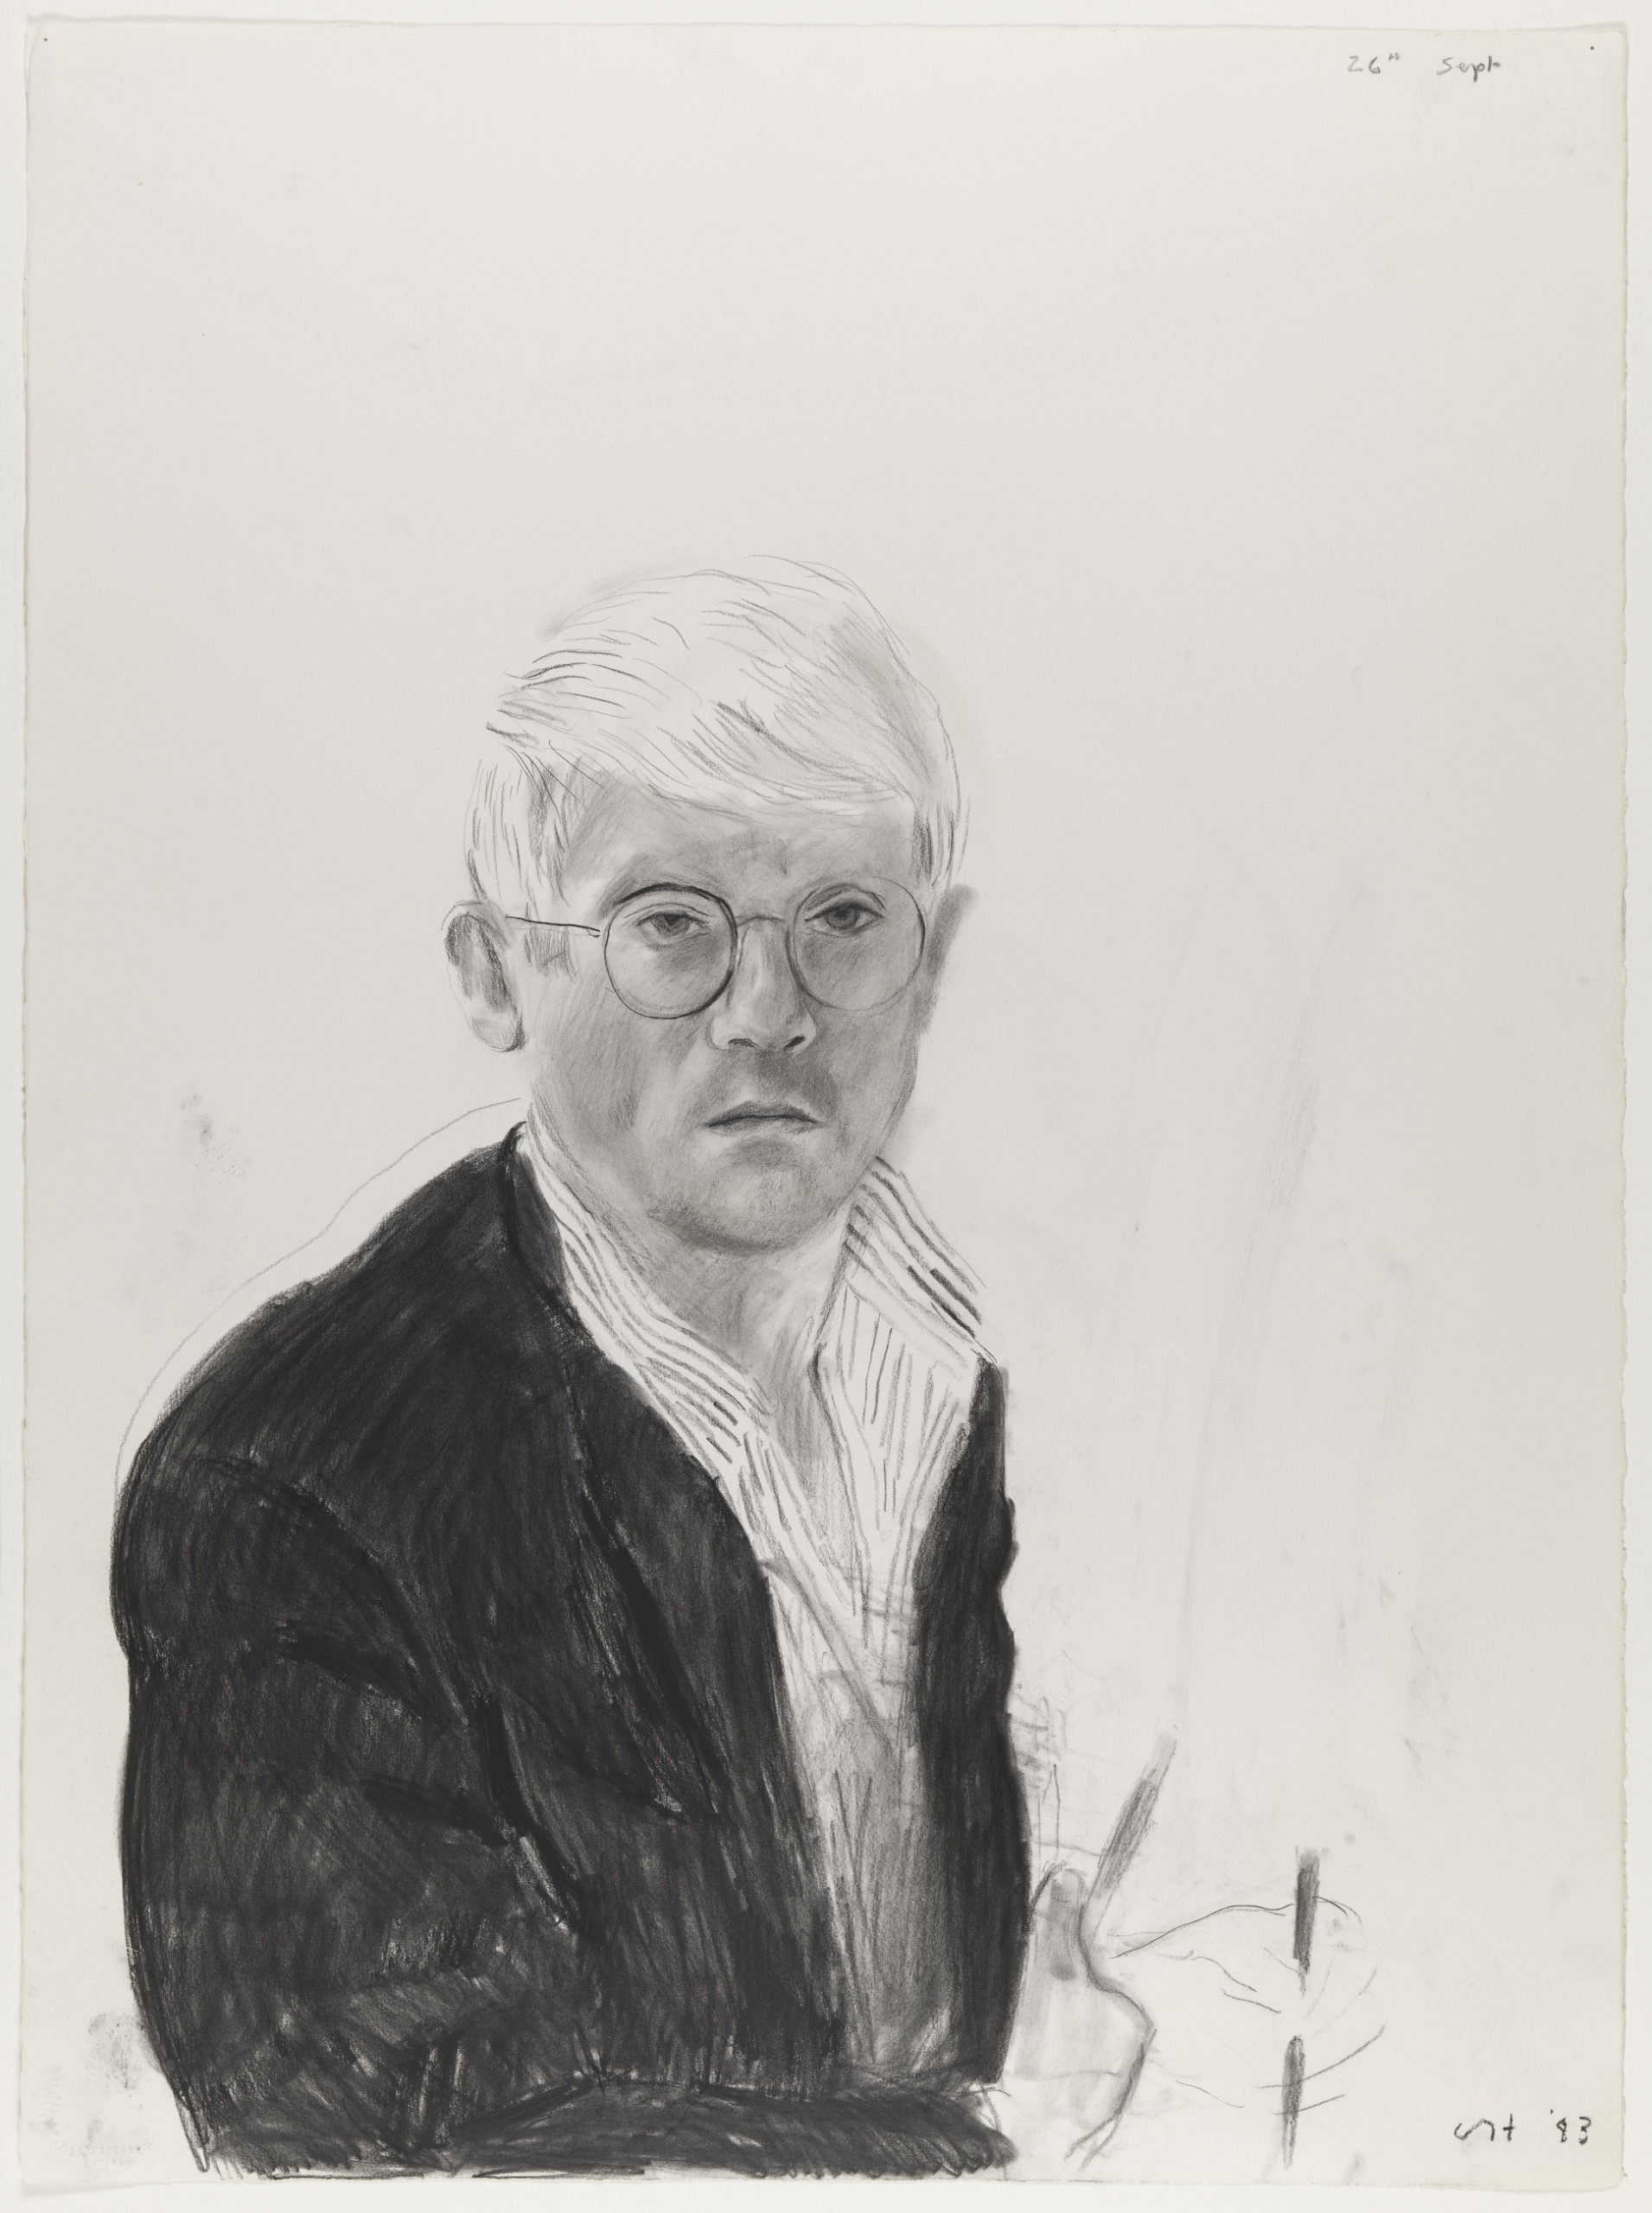 David Hockney - Self-portrait 26th Sept., 1983